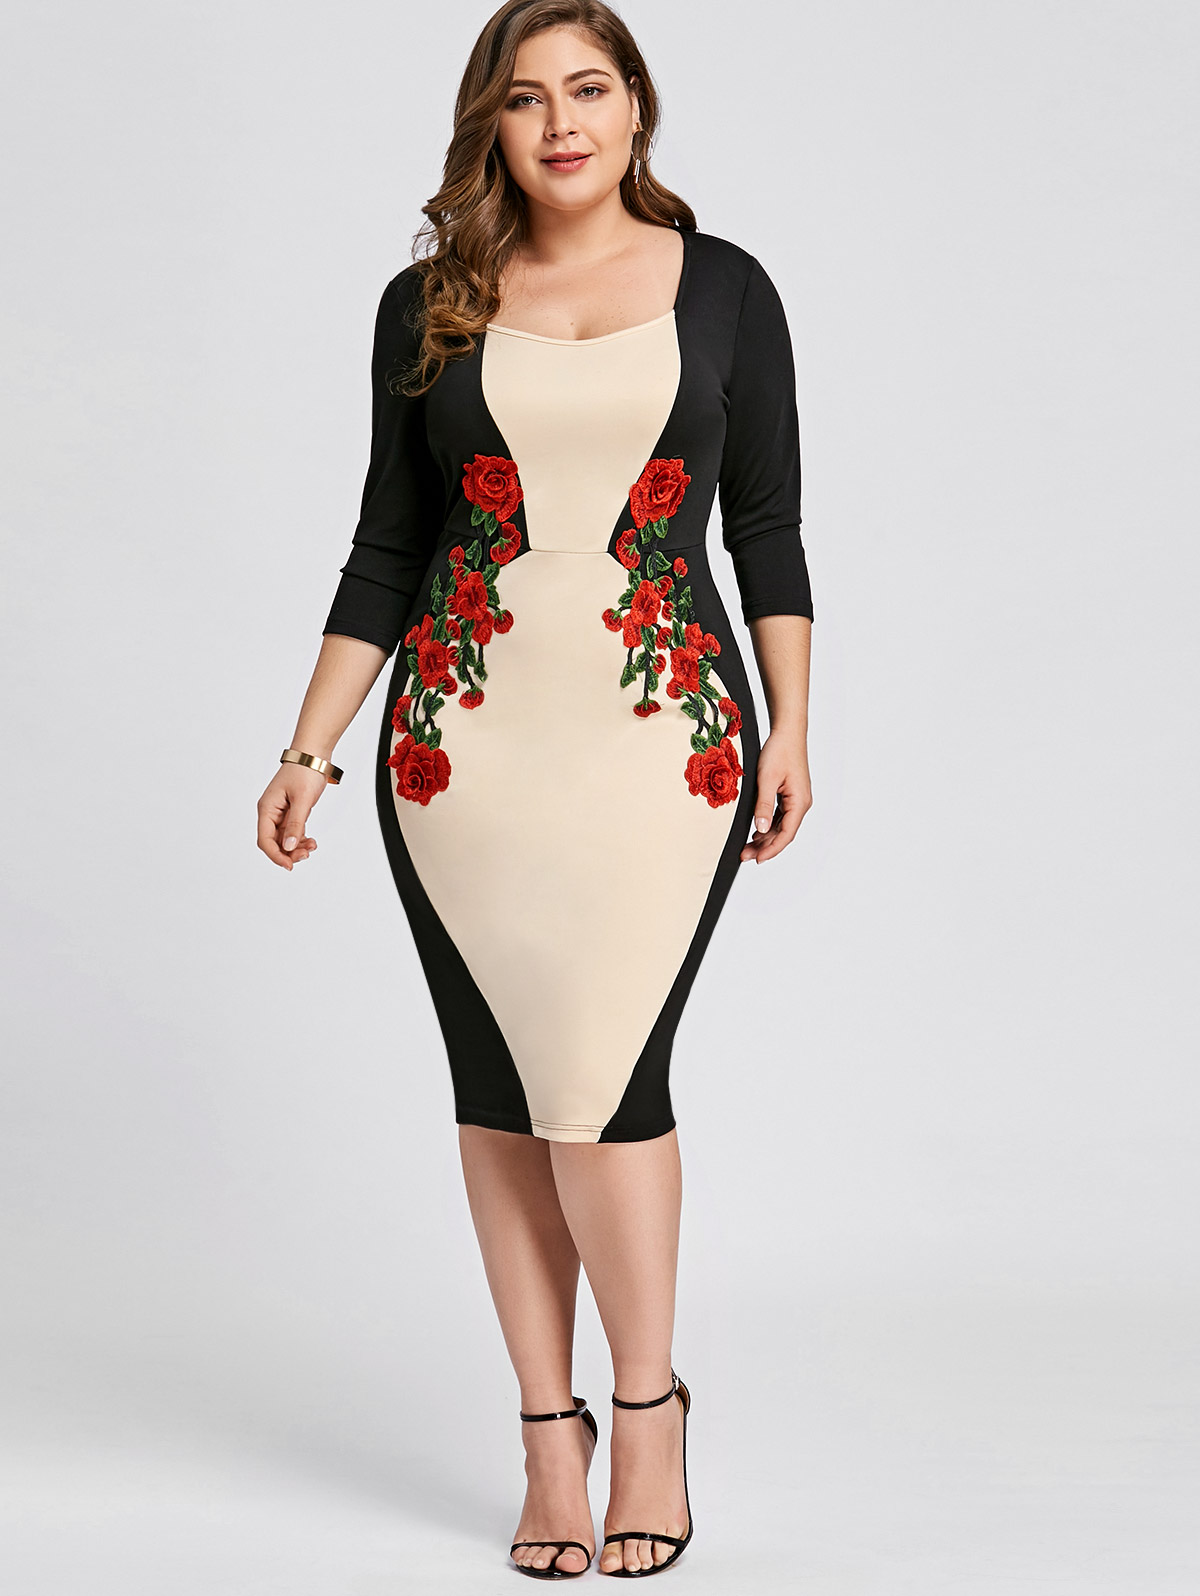 US $13.13 48% OFF|Wipalo Plus Size Embroidered Bodycon Dress Color Block  Elegant Embroidery Party Dress 3/4 Sleeve Knee Length Dress Big Size 5XL-in  ...